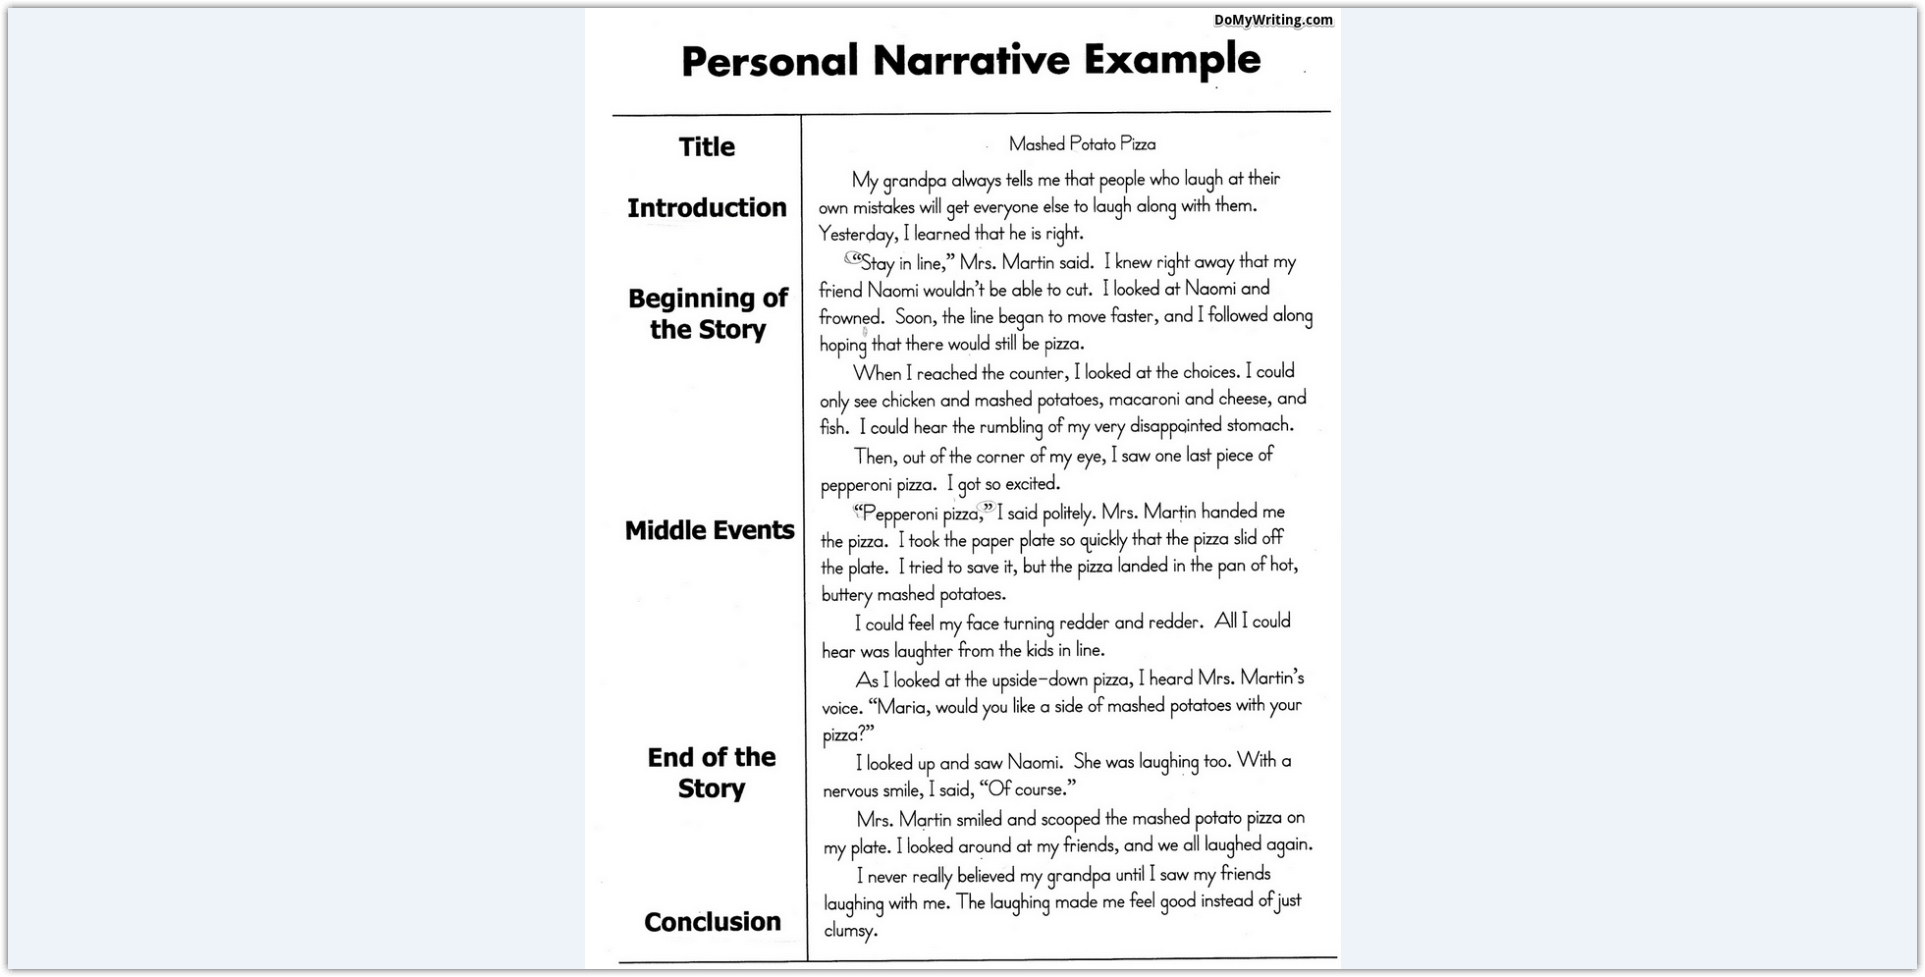 007 Narrative Essay Breathtaking Example Examples College Topics 8th Grade Full